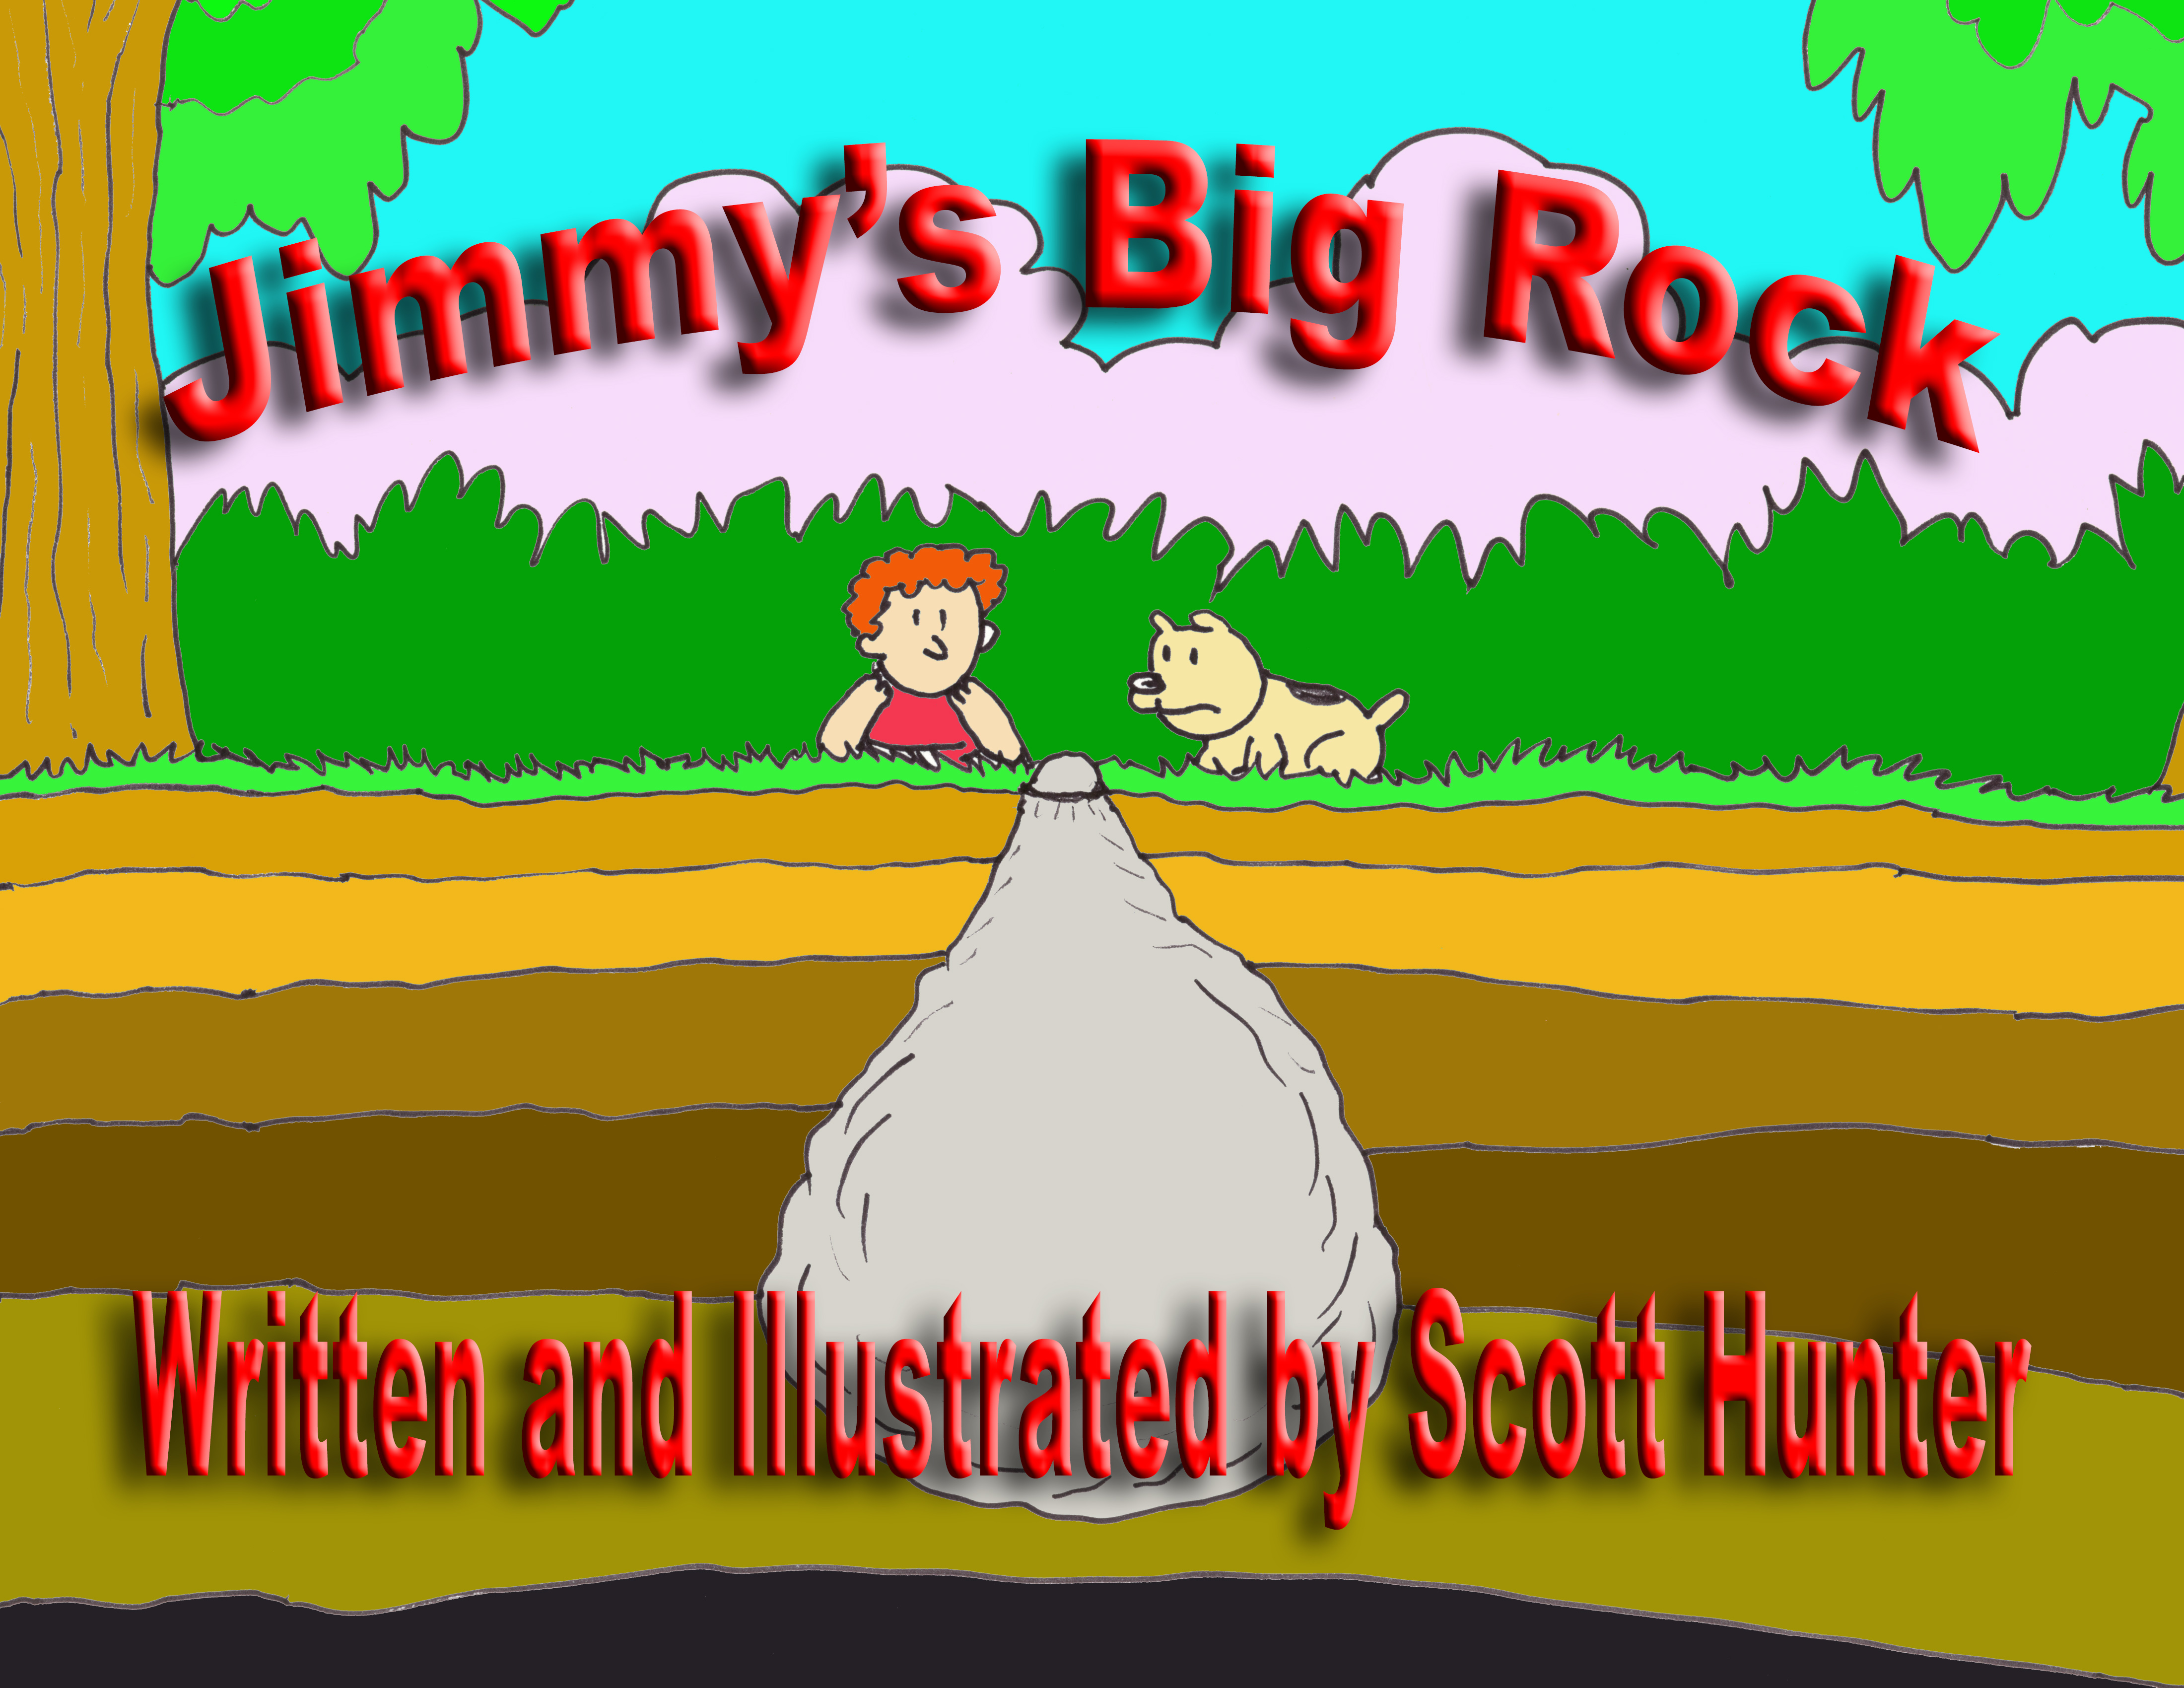 Jimmys Big Rock